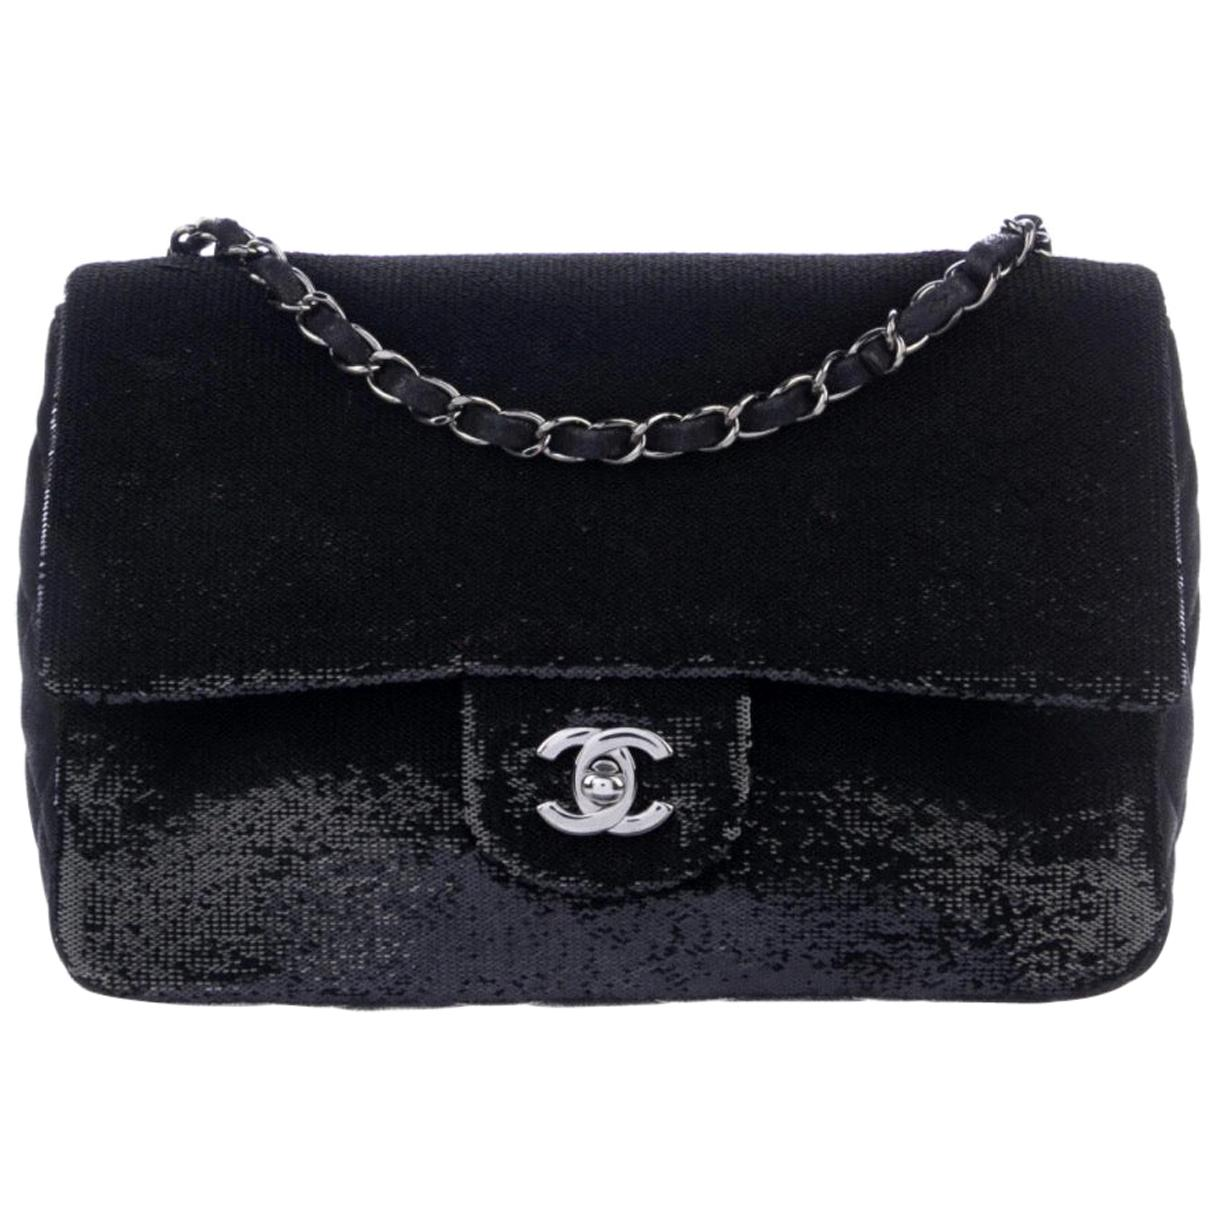 Chanel Black Sequin Leather Silver Gunmetal Medium Evening Flap Shoulder Bag